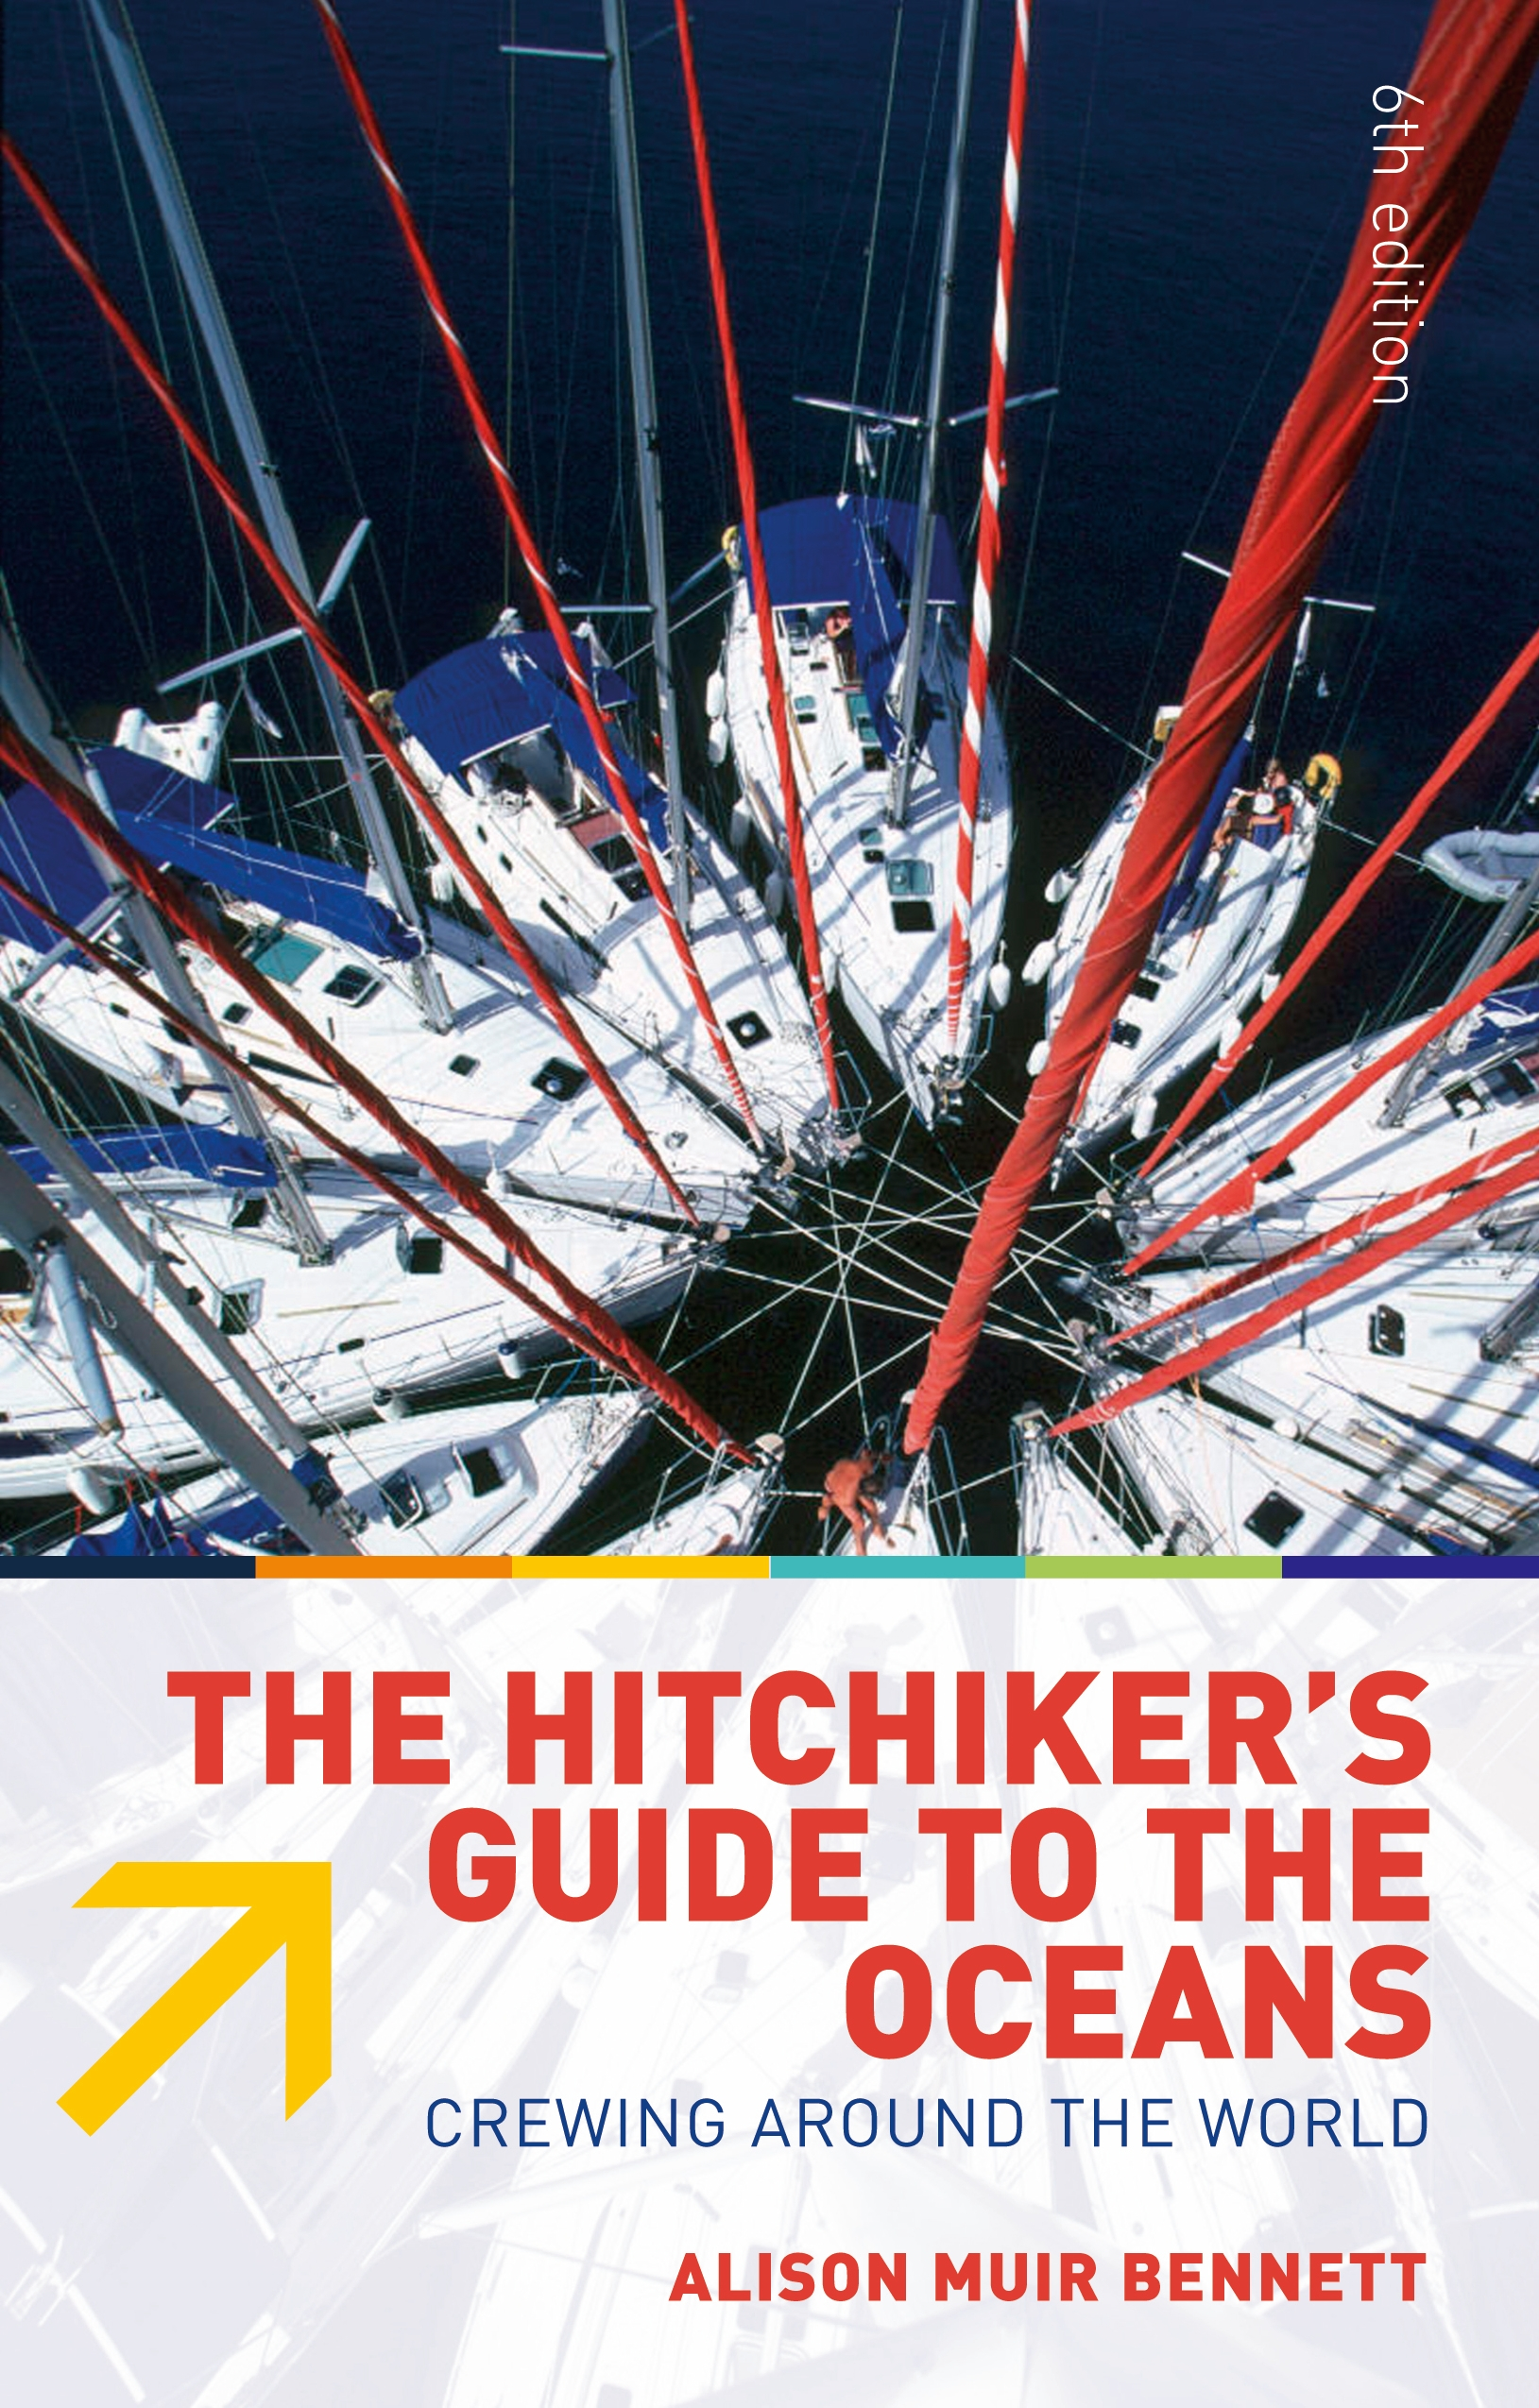 The Hitchiker's Guide to the Oceans Crewing Around the World